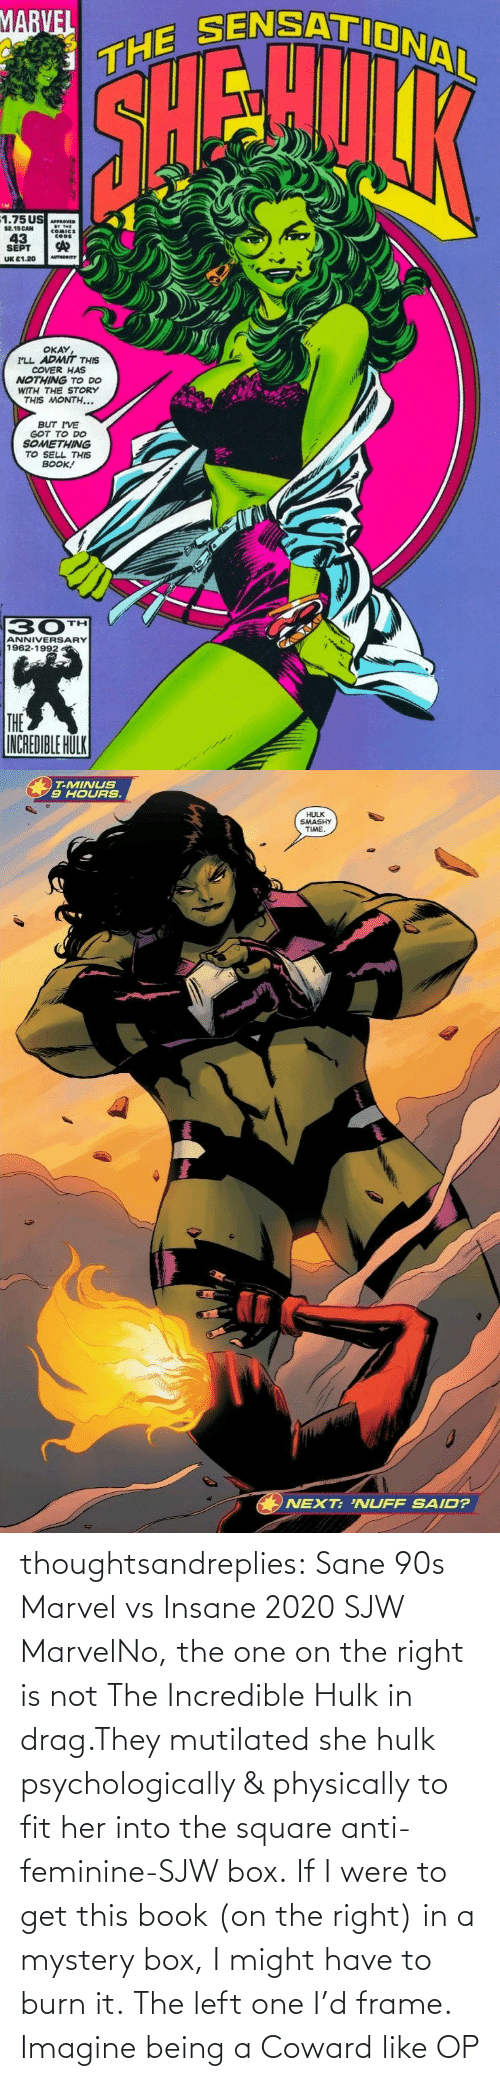 Marvel: thoughtsandreplies:  Sane 90s Marvel vs Insane 2020 SJW MarvelNo, the one on the right is not The Incredible Hulk in drag.They mutilated she hulk psychologically & physically to fit her into the square anti-feminine-SJW box. If I were to get this book (on the right) in a mystery box, I might have to burn it. The left one I'd frame.    Imagine being a Coward like OP